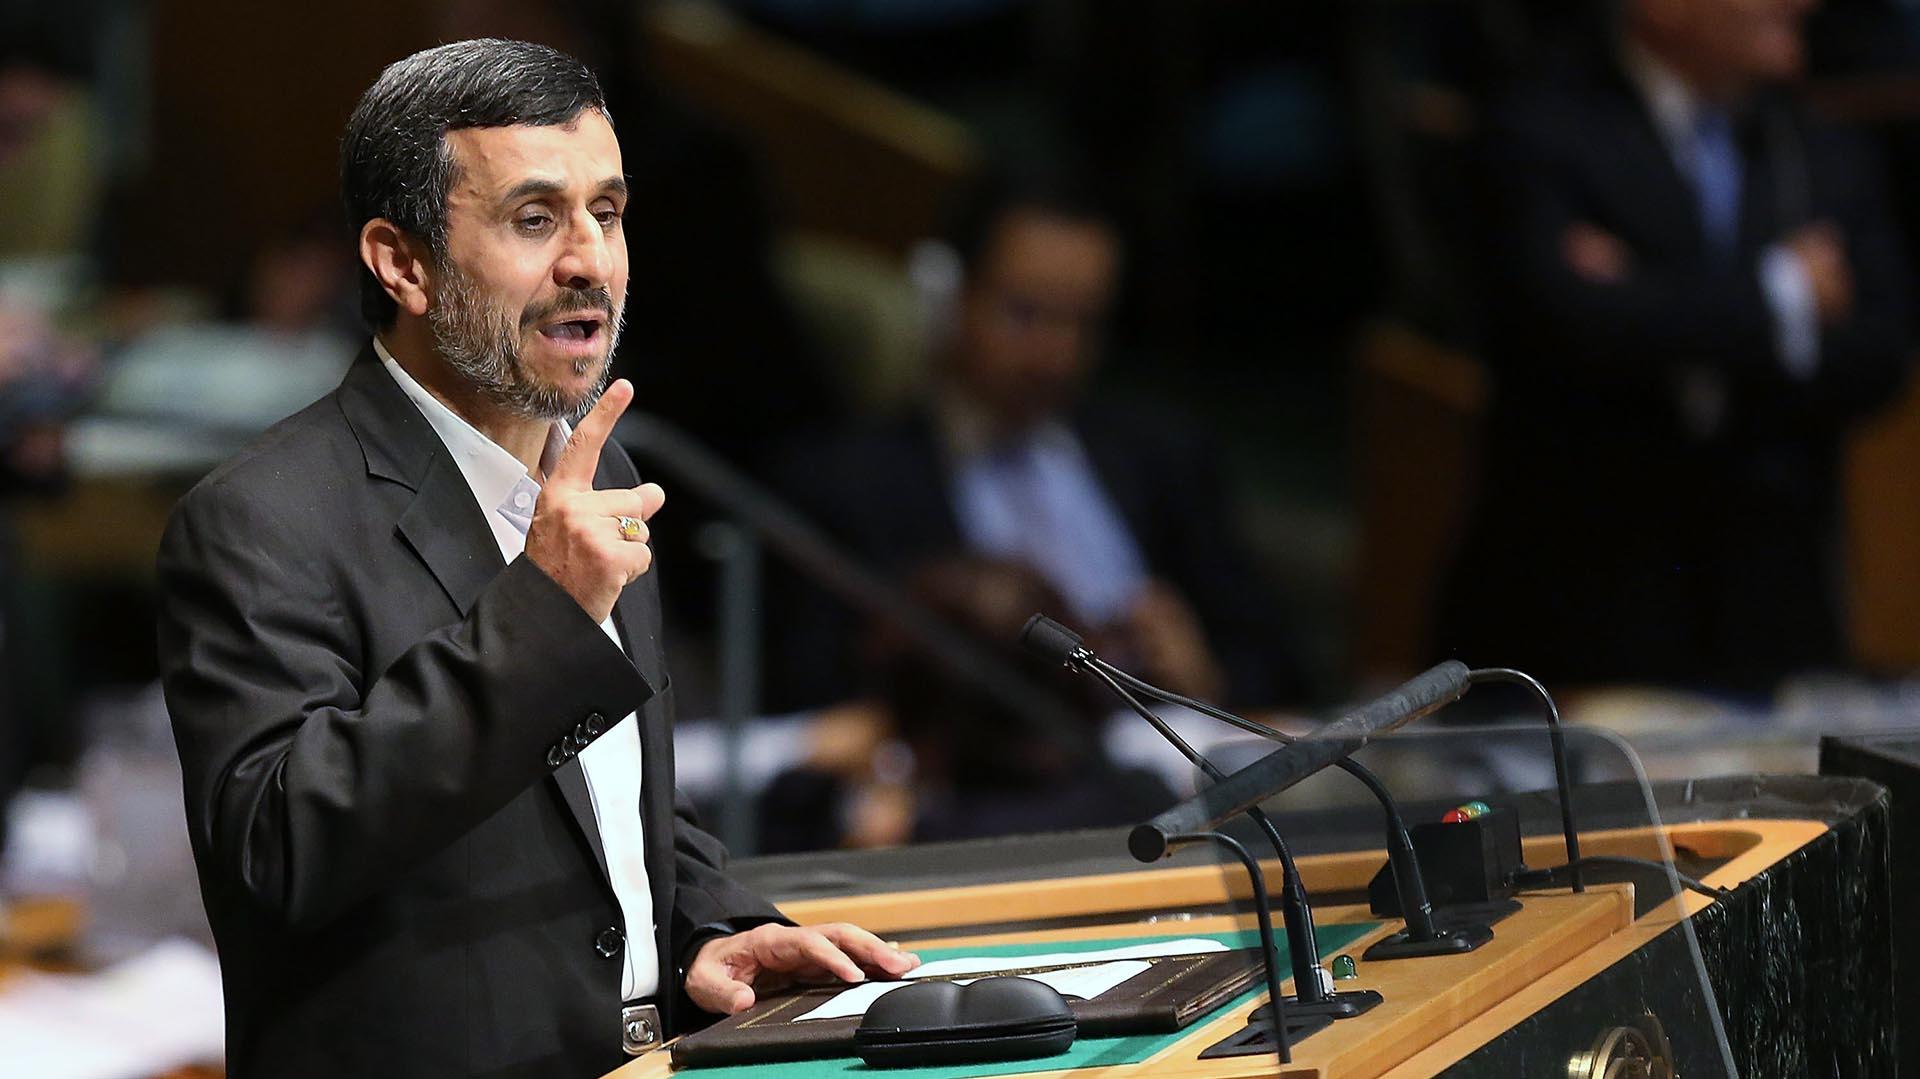 Mahmud Ahmadinejad (Getty)